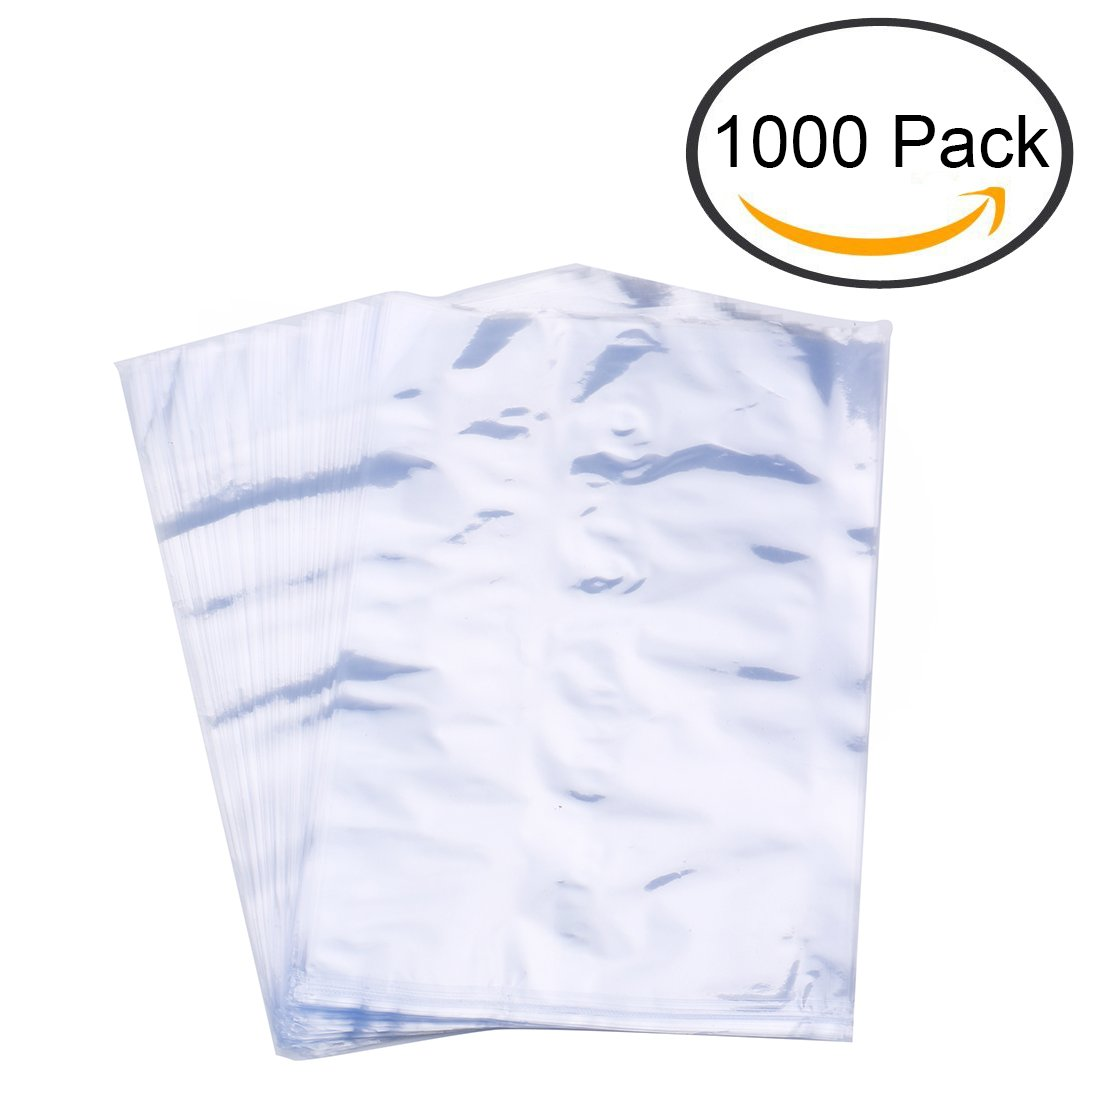 Tosnail 1000 Pieces 4'' x 6'' PVC Shrink Wrap Bags - Great for Soaps, Bath Bombs, Tins, Crafts & DIY Homemade Gifts